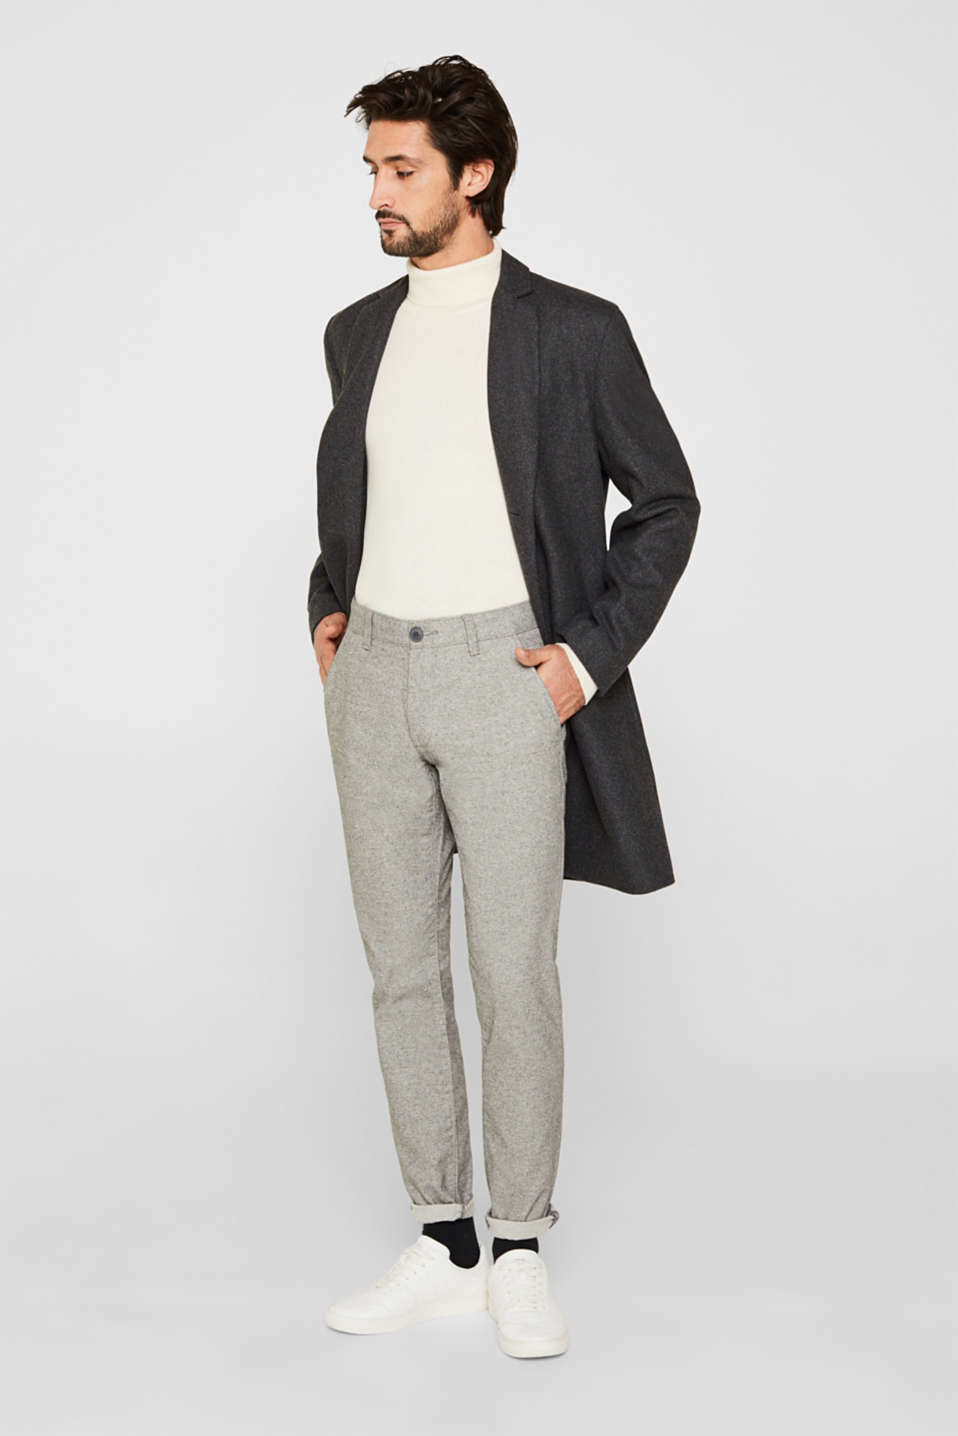 Esprit - Stretch trousers made of melange woven fabric